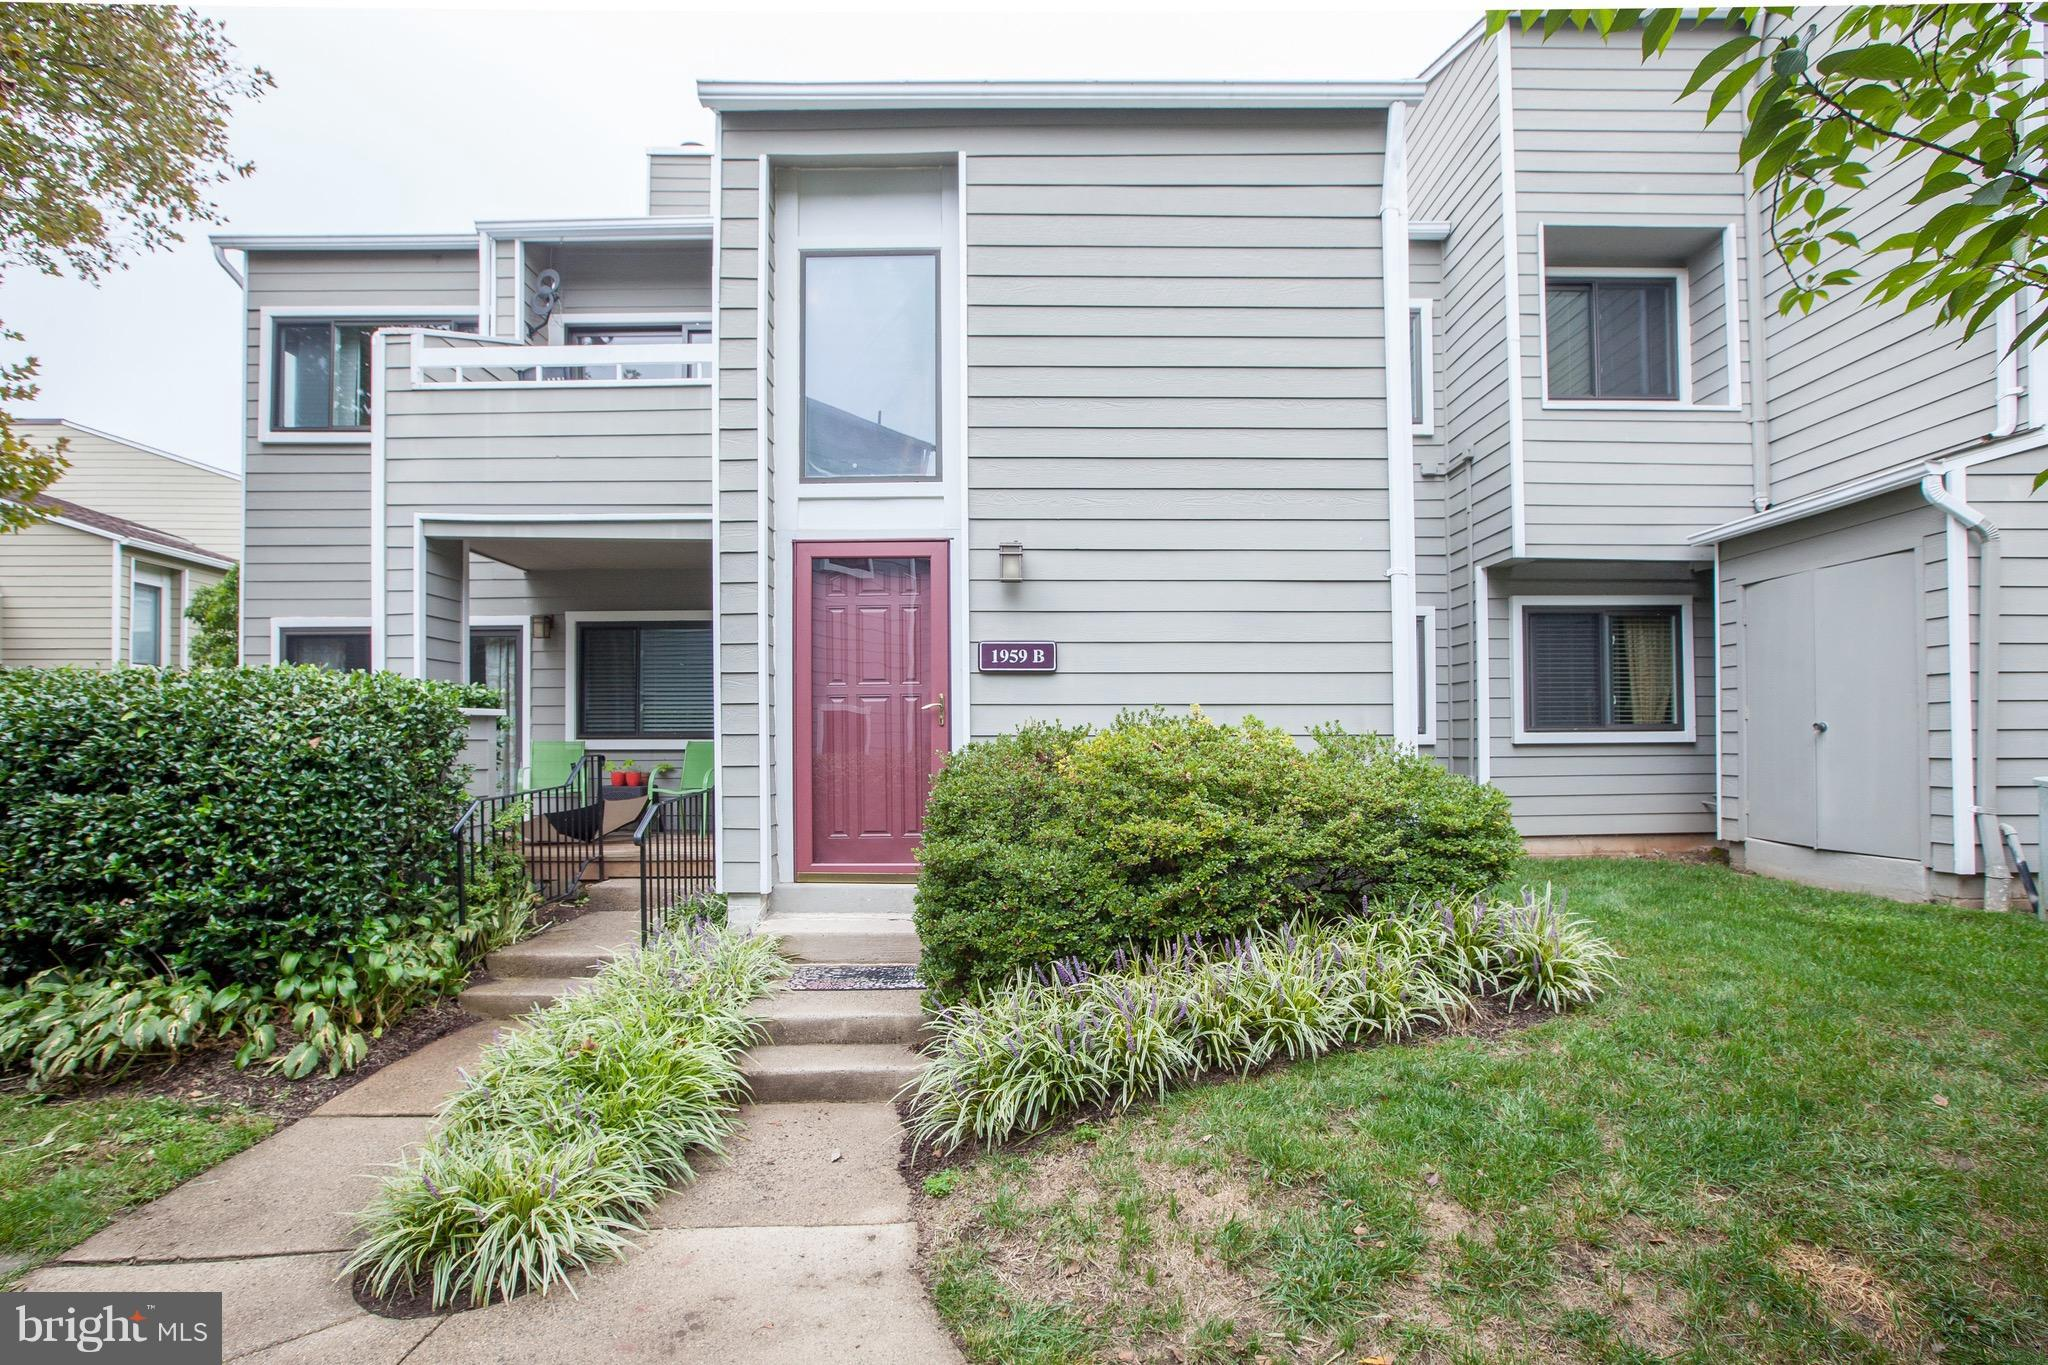 Modern style in quiet south Reston! This 2 BR, 1 BA townhouse condo offers LR and dining room with smooth vaulted ceilings, FP, and a stunning bonus office/loft - all in a top floor layout filled with morning light. Newly-updated bathroom, new kitchen appliances, new carpet and NEW HVAC. Walk to the Metro, 2 lakes, 2 pools, tennis courts, W&OD Trail, grocery store, Starbucks and great restaurants.